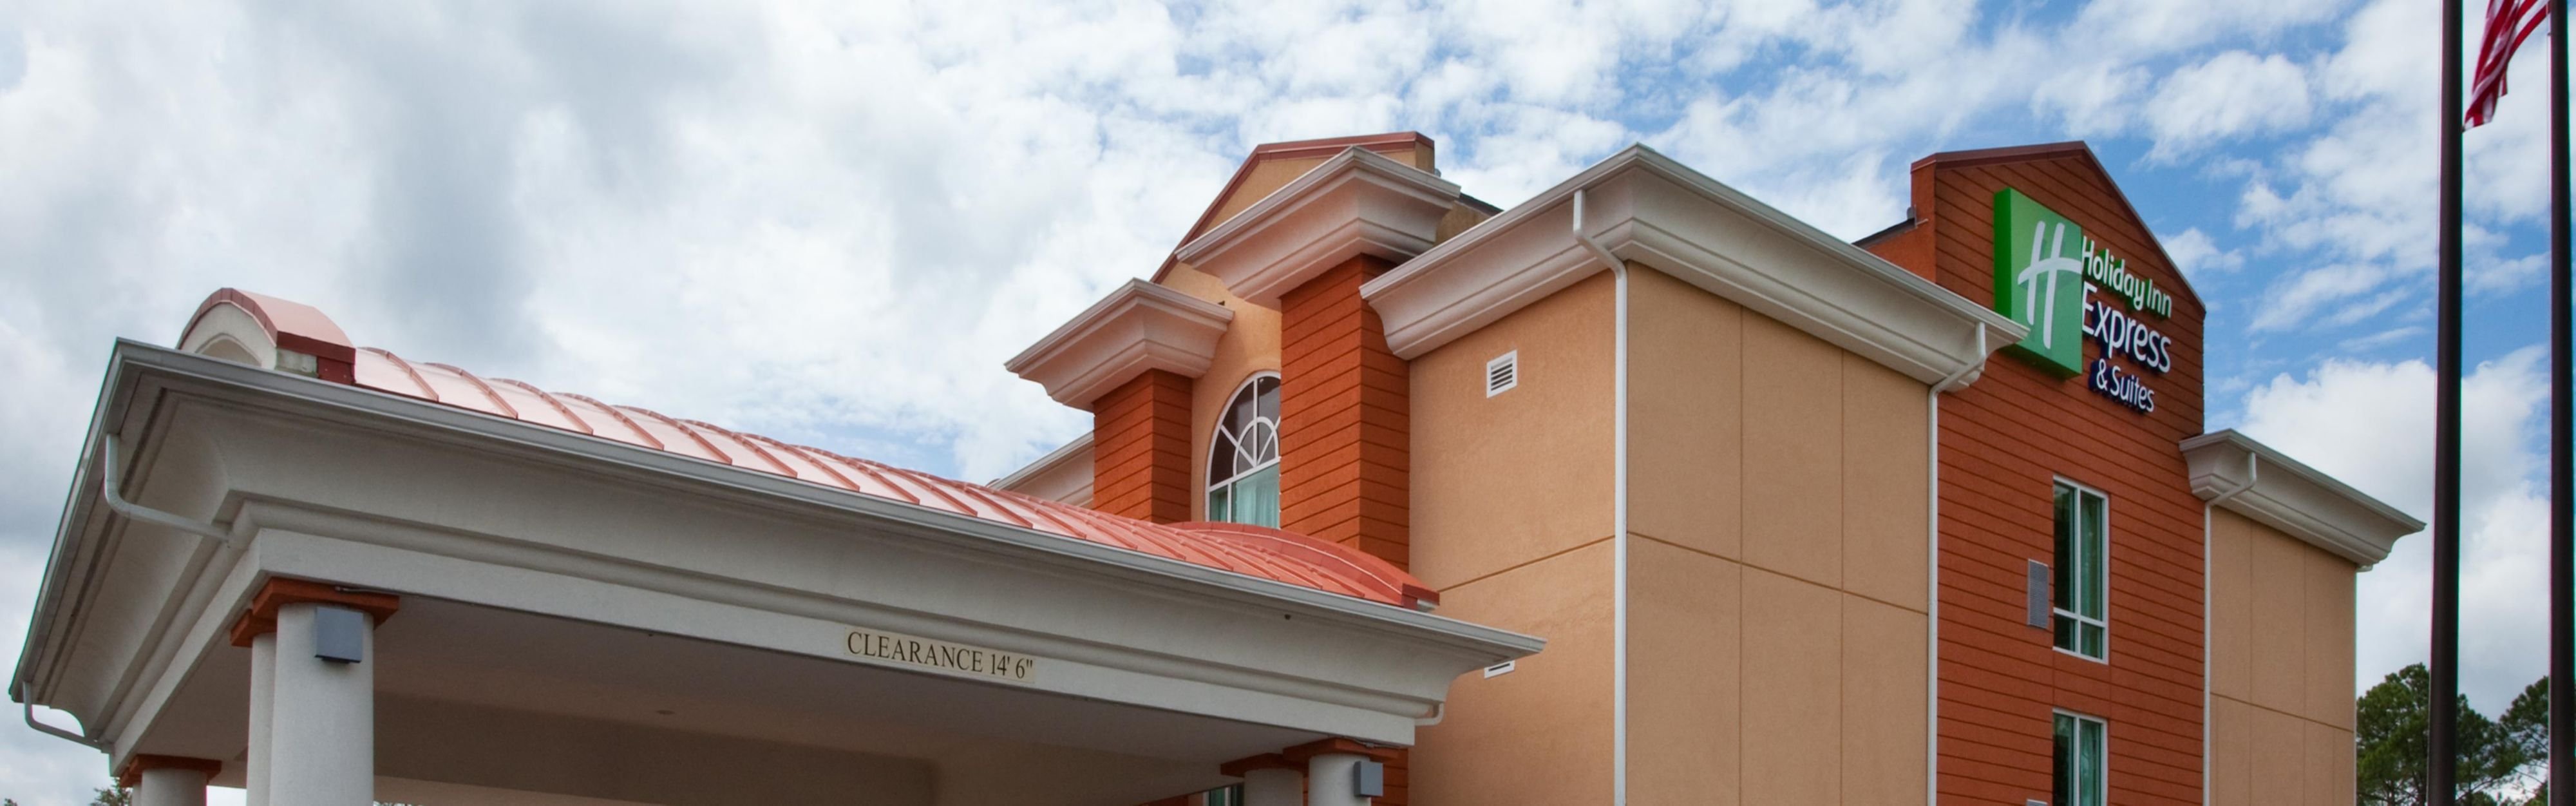 Holiday Inn Express & Suites Jacksonville North-Fernandina image 0